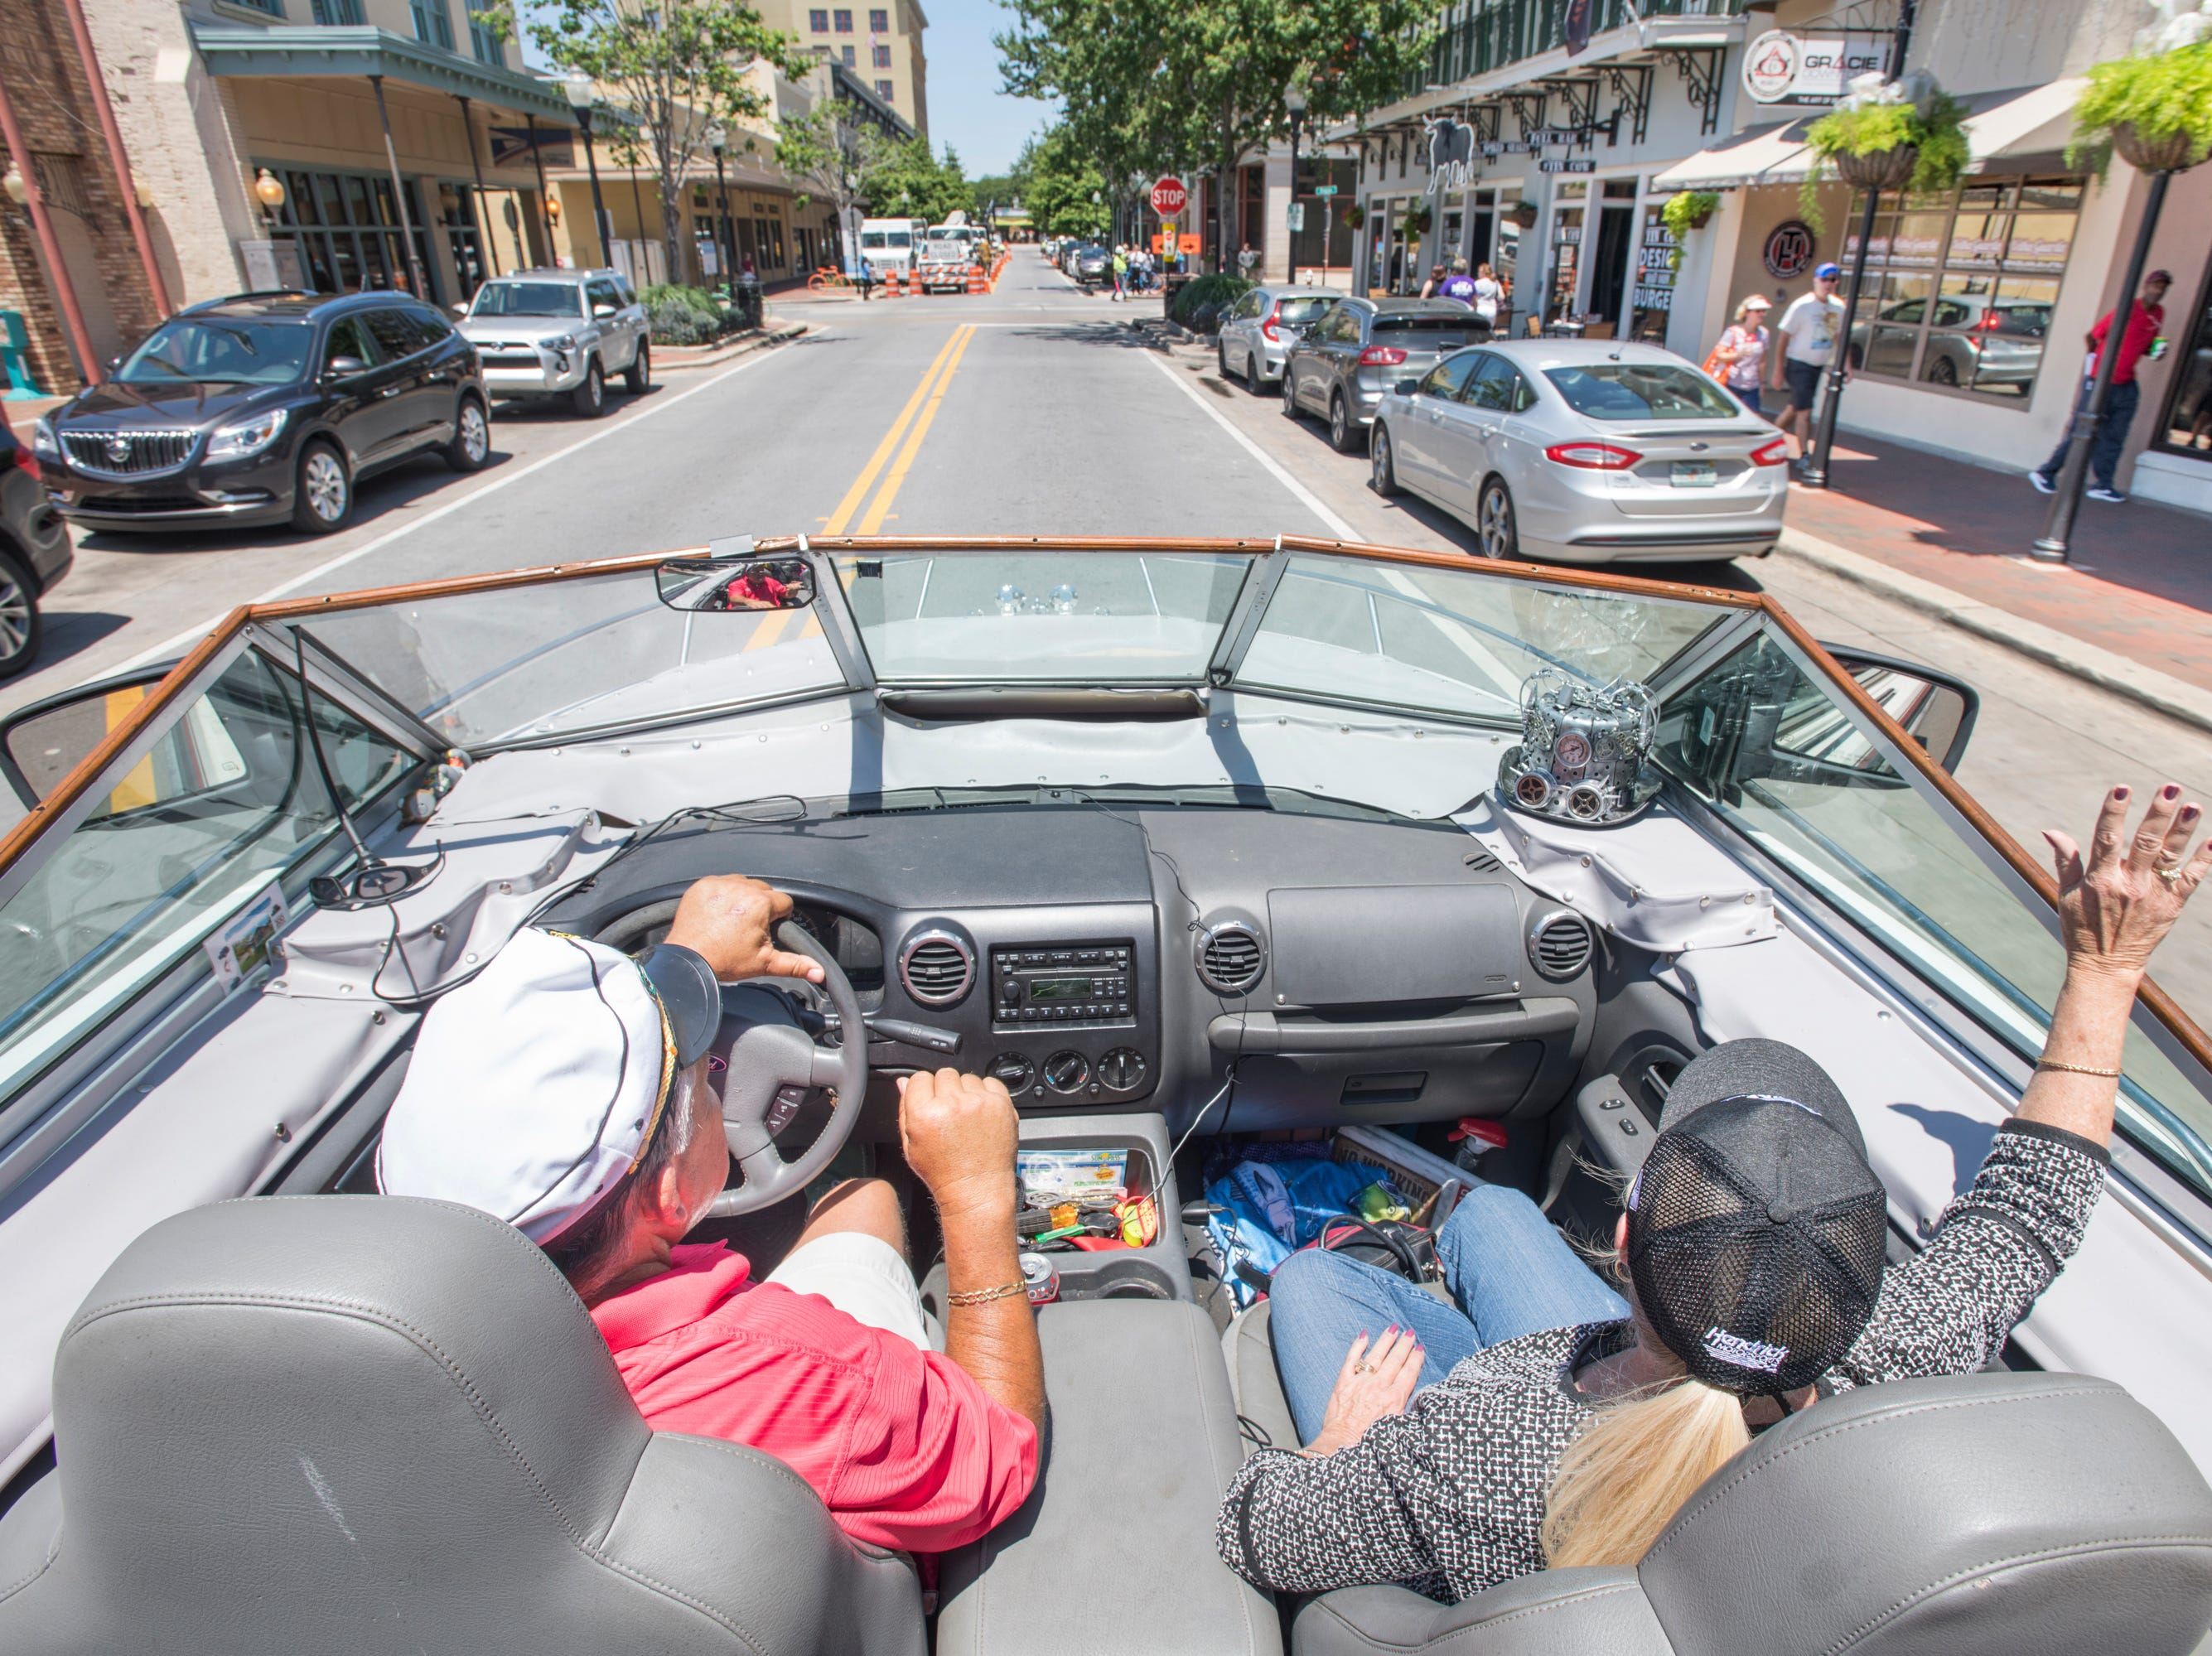 Gerry and Karen Moore wave to passers-by as they cruise along Palafox Street in their Boat Car in downtown Pensacola on Tuesday, May 7, 2019.  The vehicle is a  1986 Chris Craft 210 Scorpion boat - 2003 Ford Expedition SUV hybrid created by Gerry.